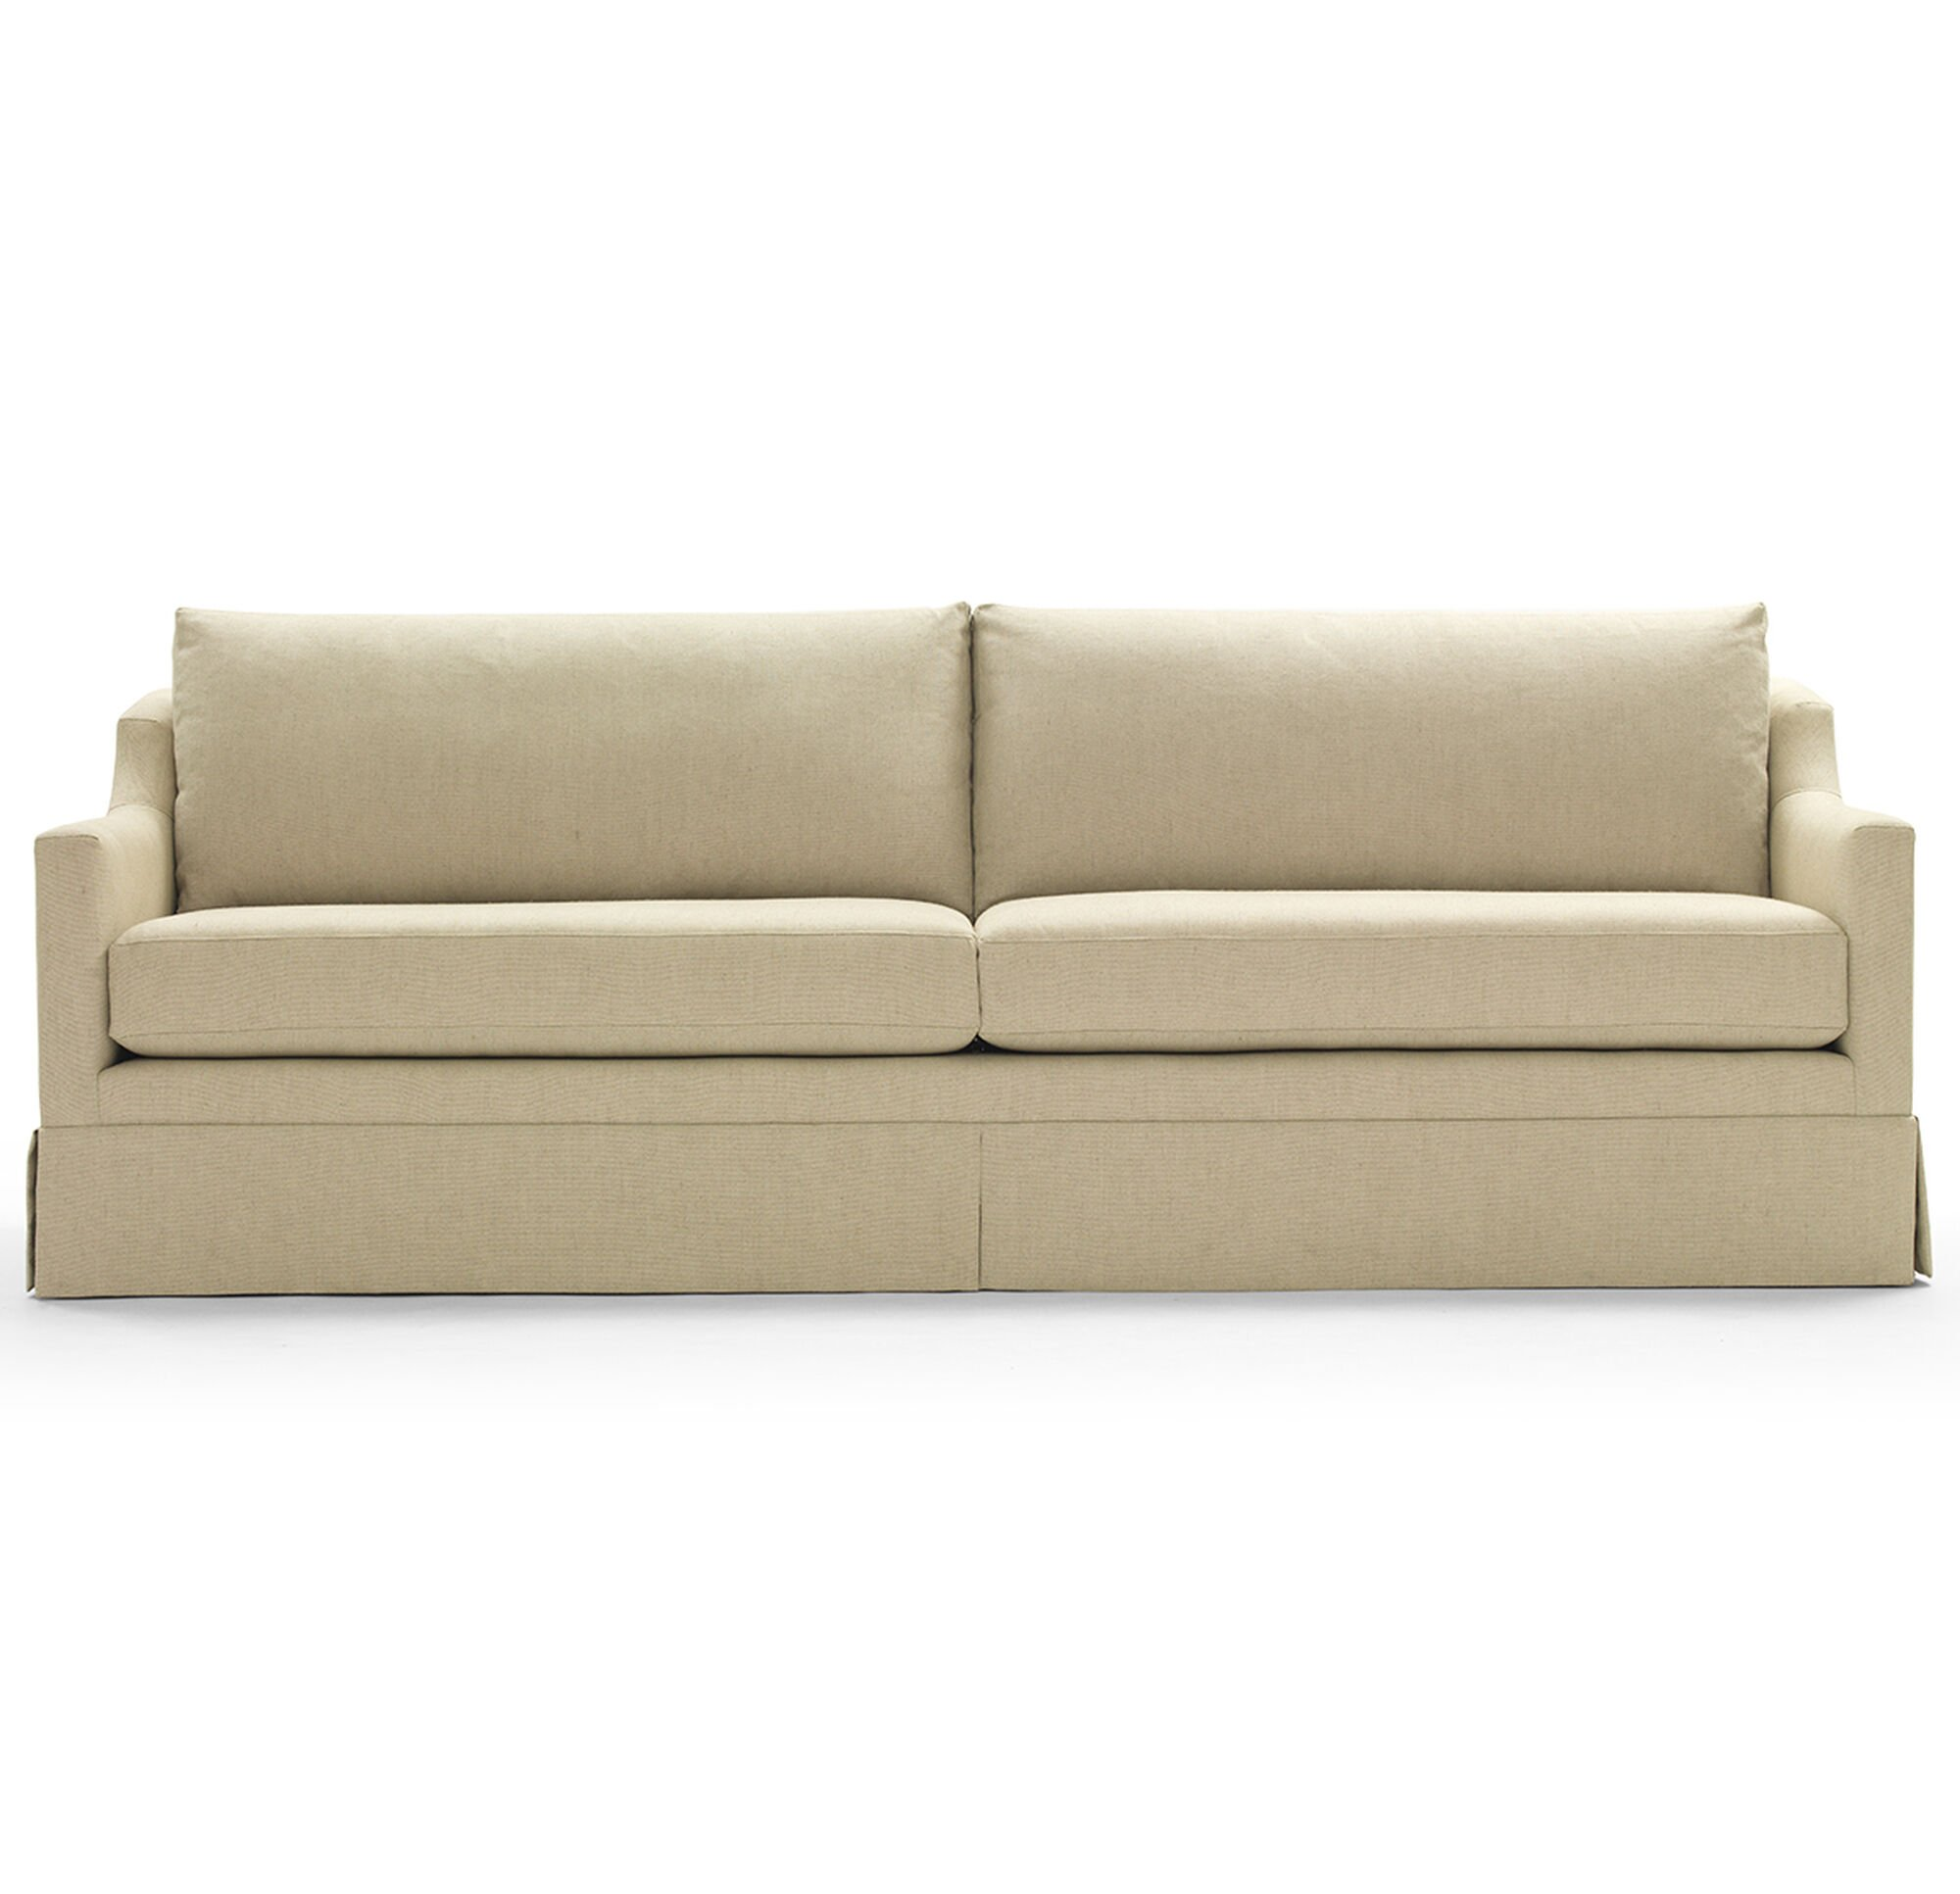 Skirted Sofa Celine Skirted Sofa From The Suzanne Kasler Collection By Hickory Thesofa